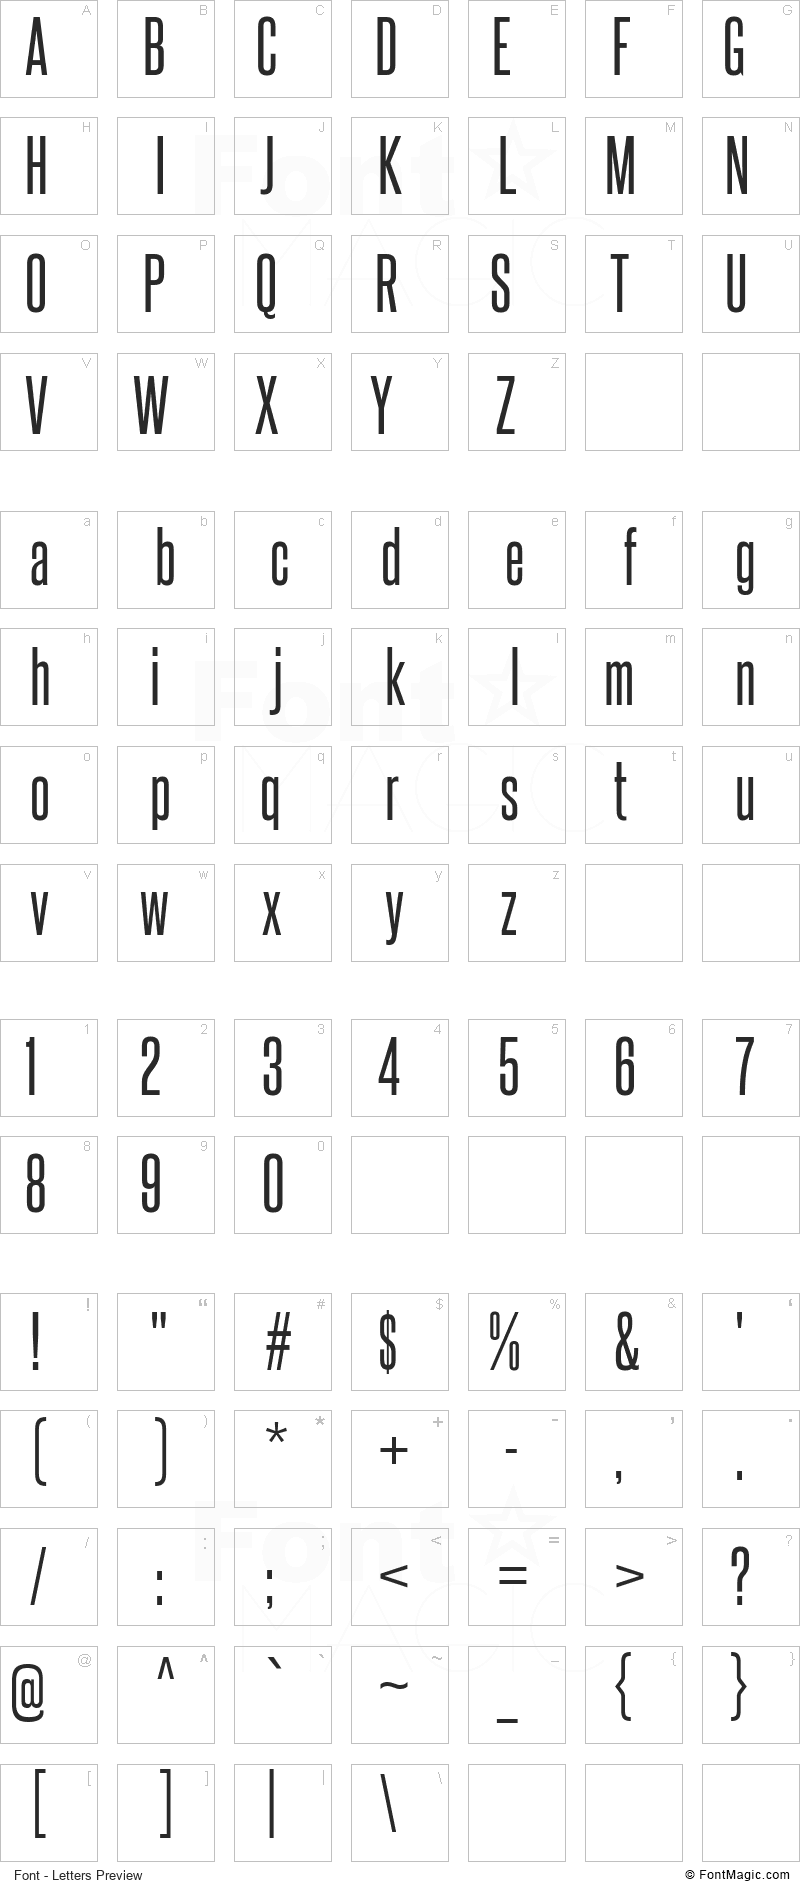 Steelfish Font - All Latters Preview Chart